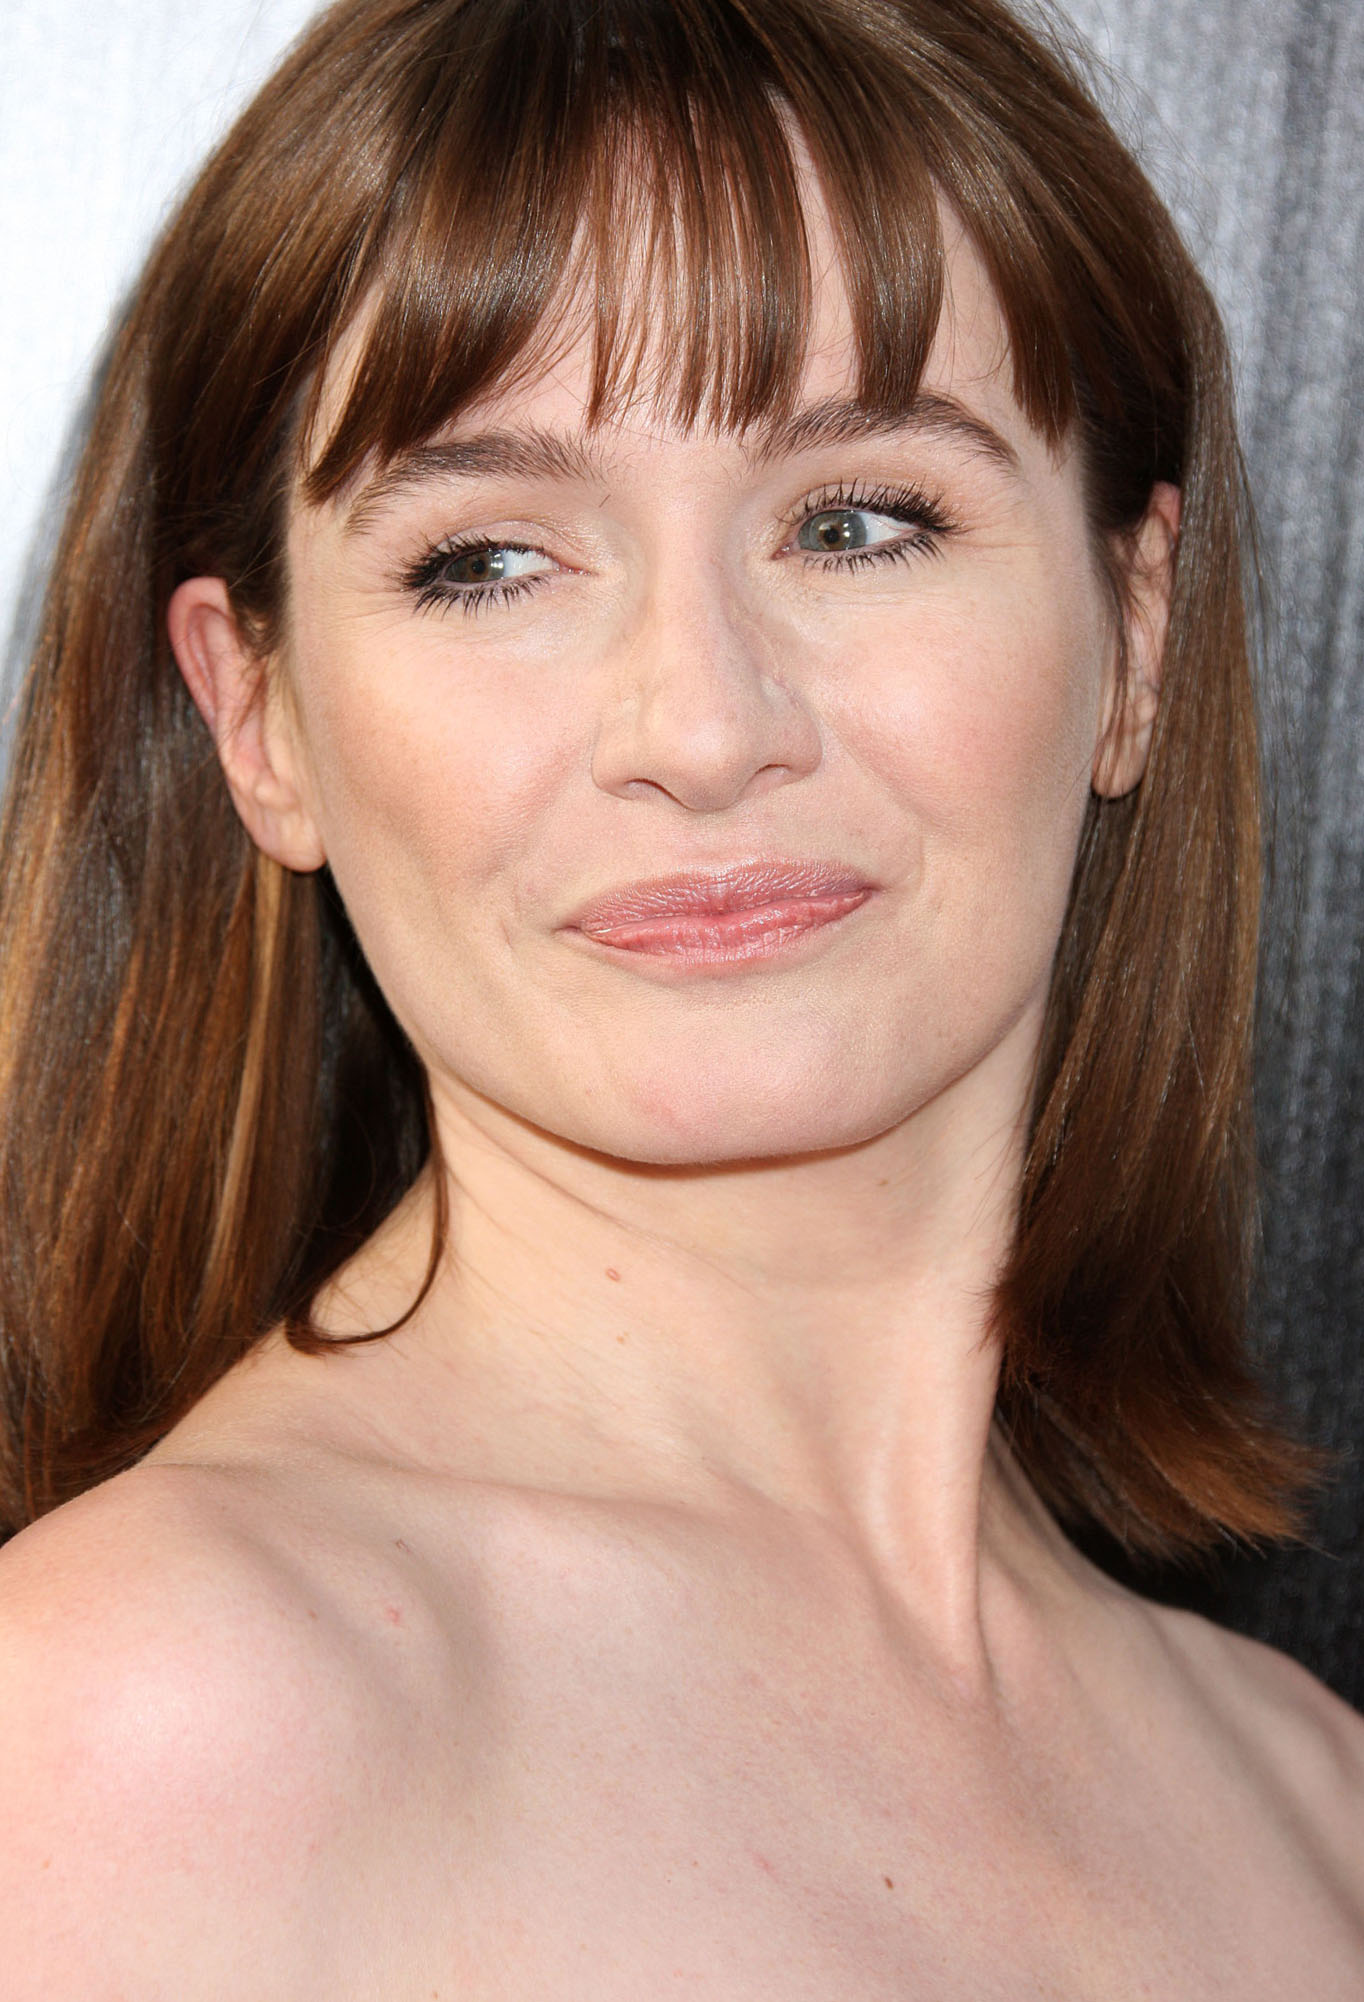 Emily mortimer the s dictionary scandalplanetcom 6